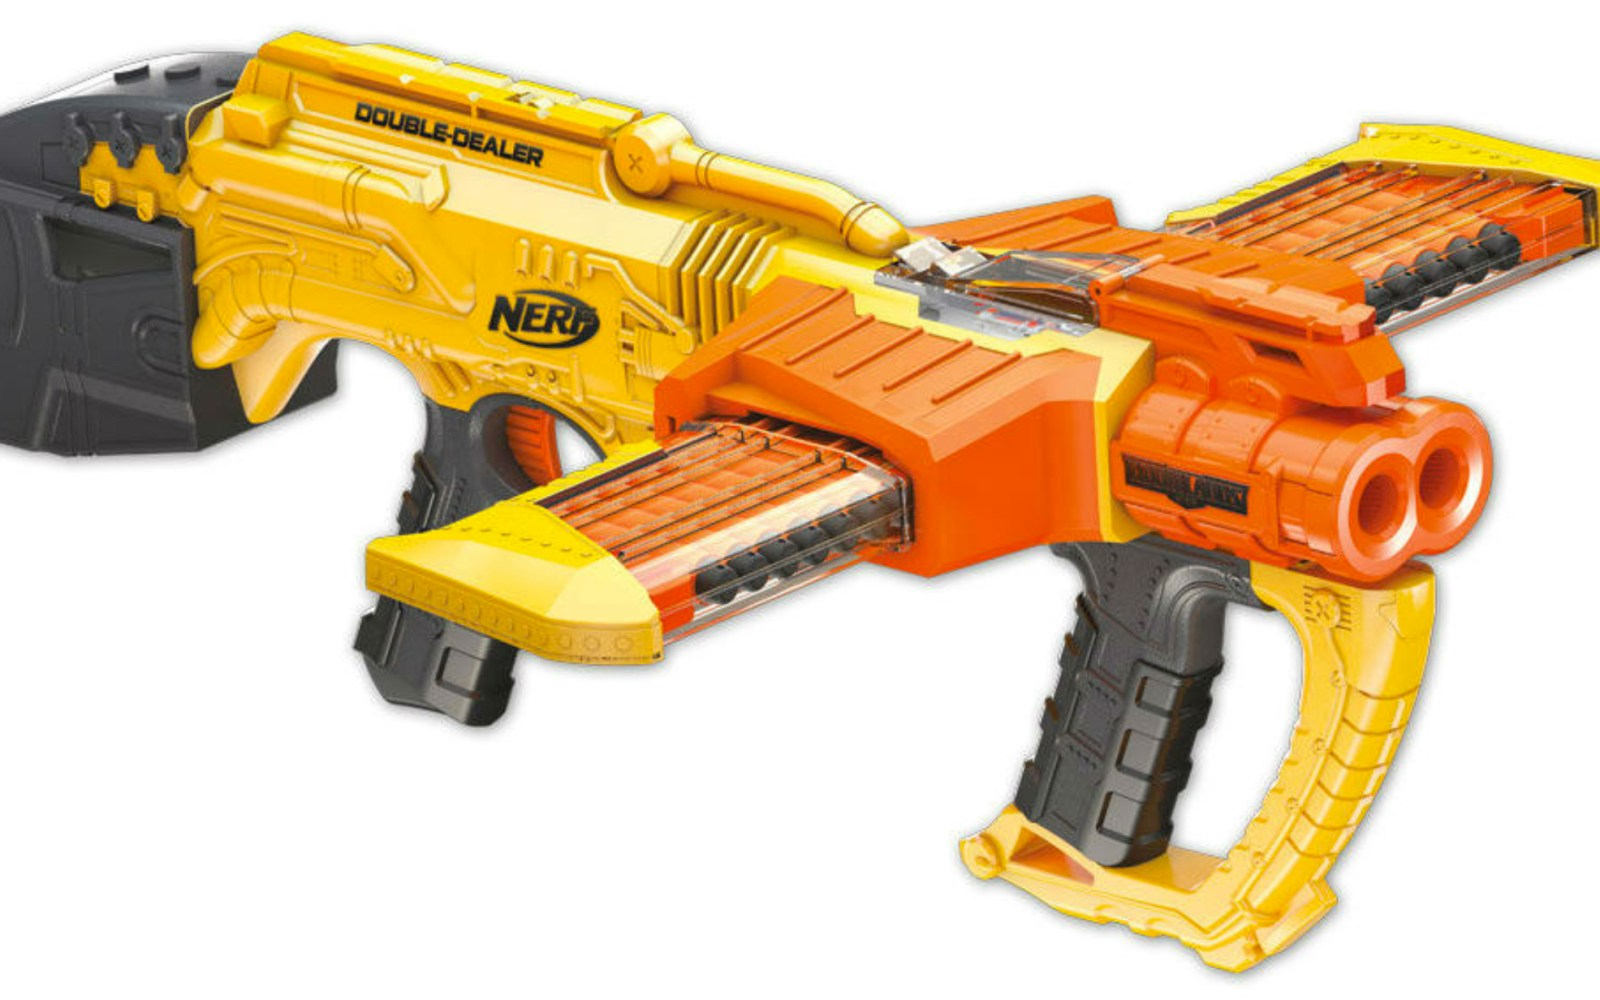 You have to see NERF's new Crossbow and Zombie Brainsaw that are coming out this fall